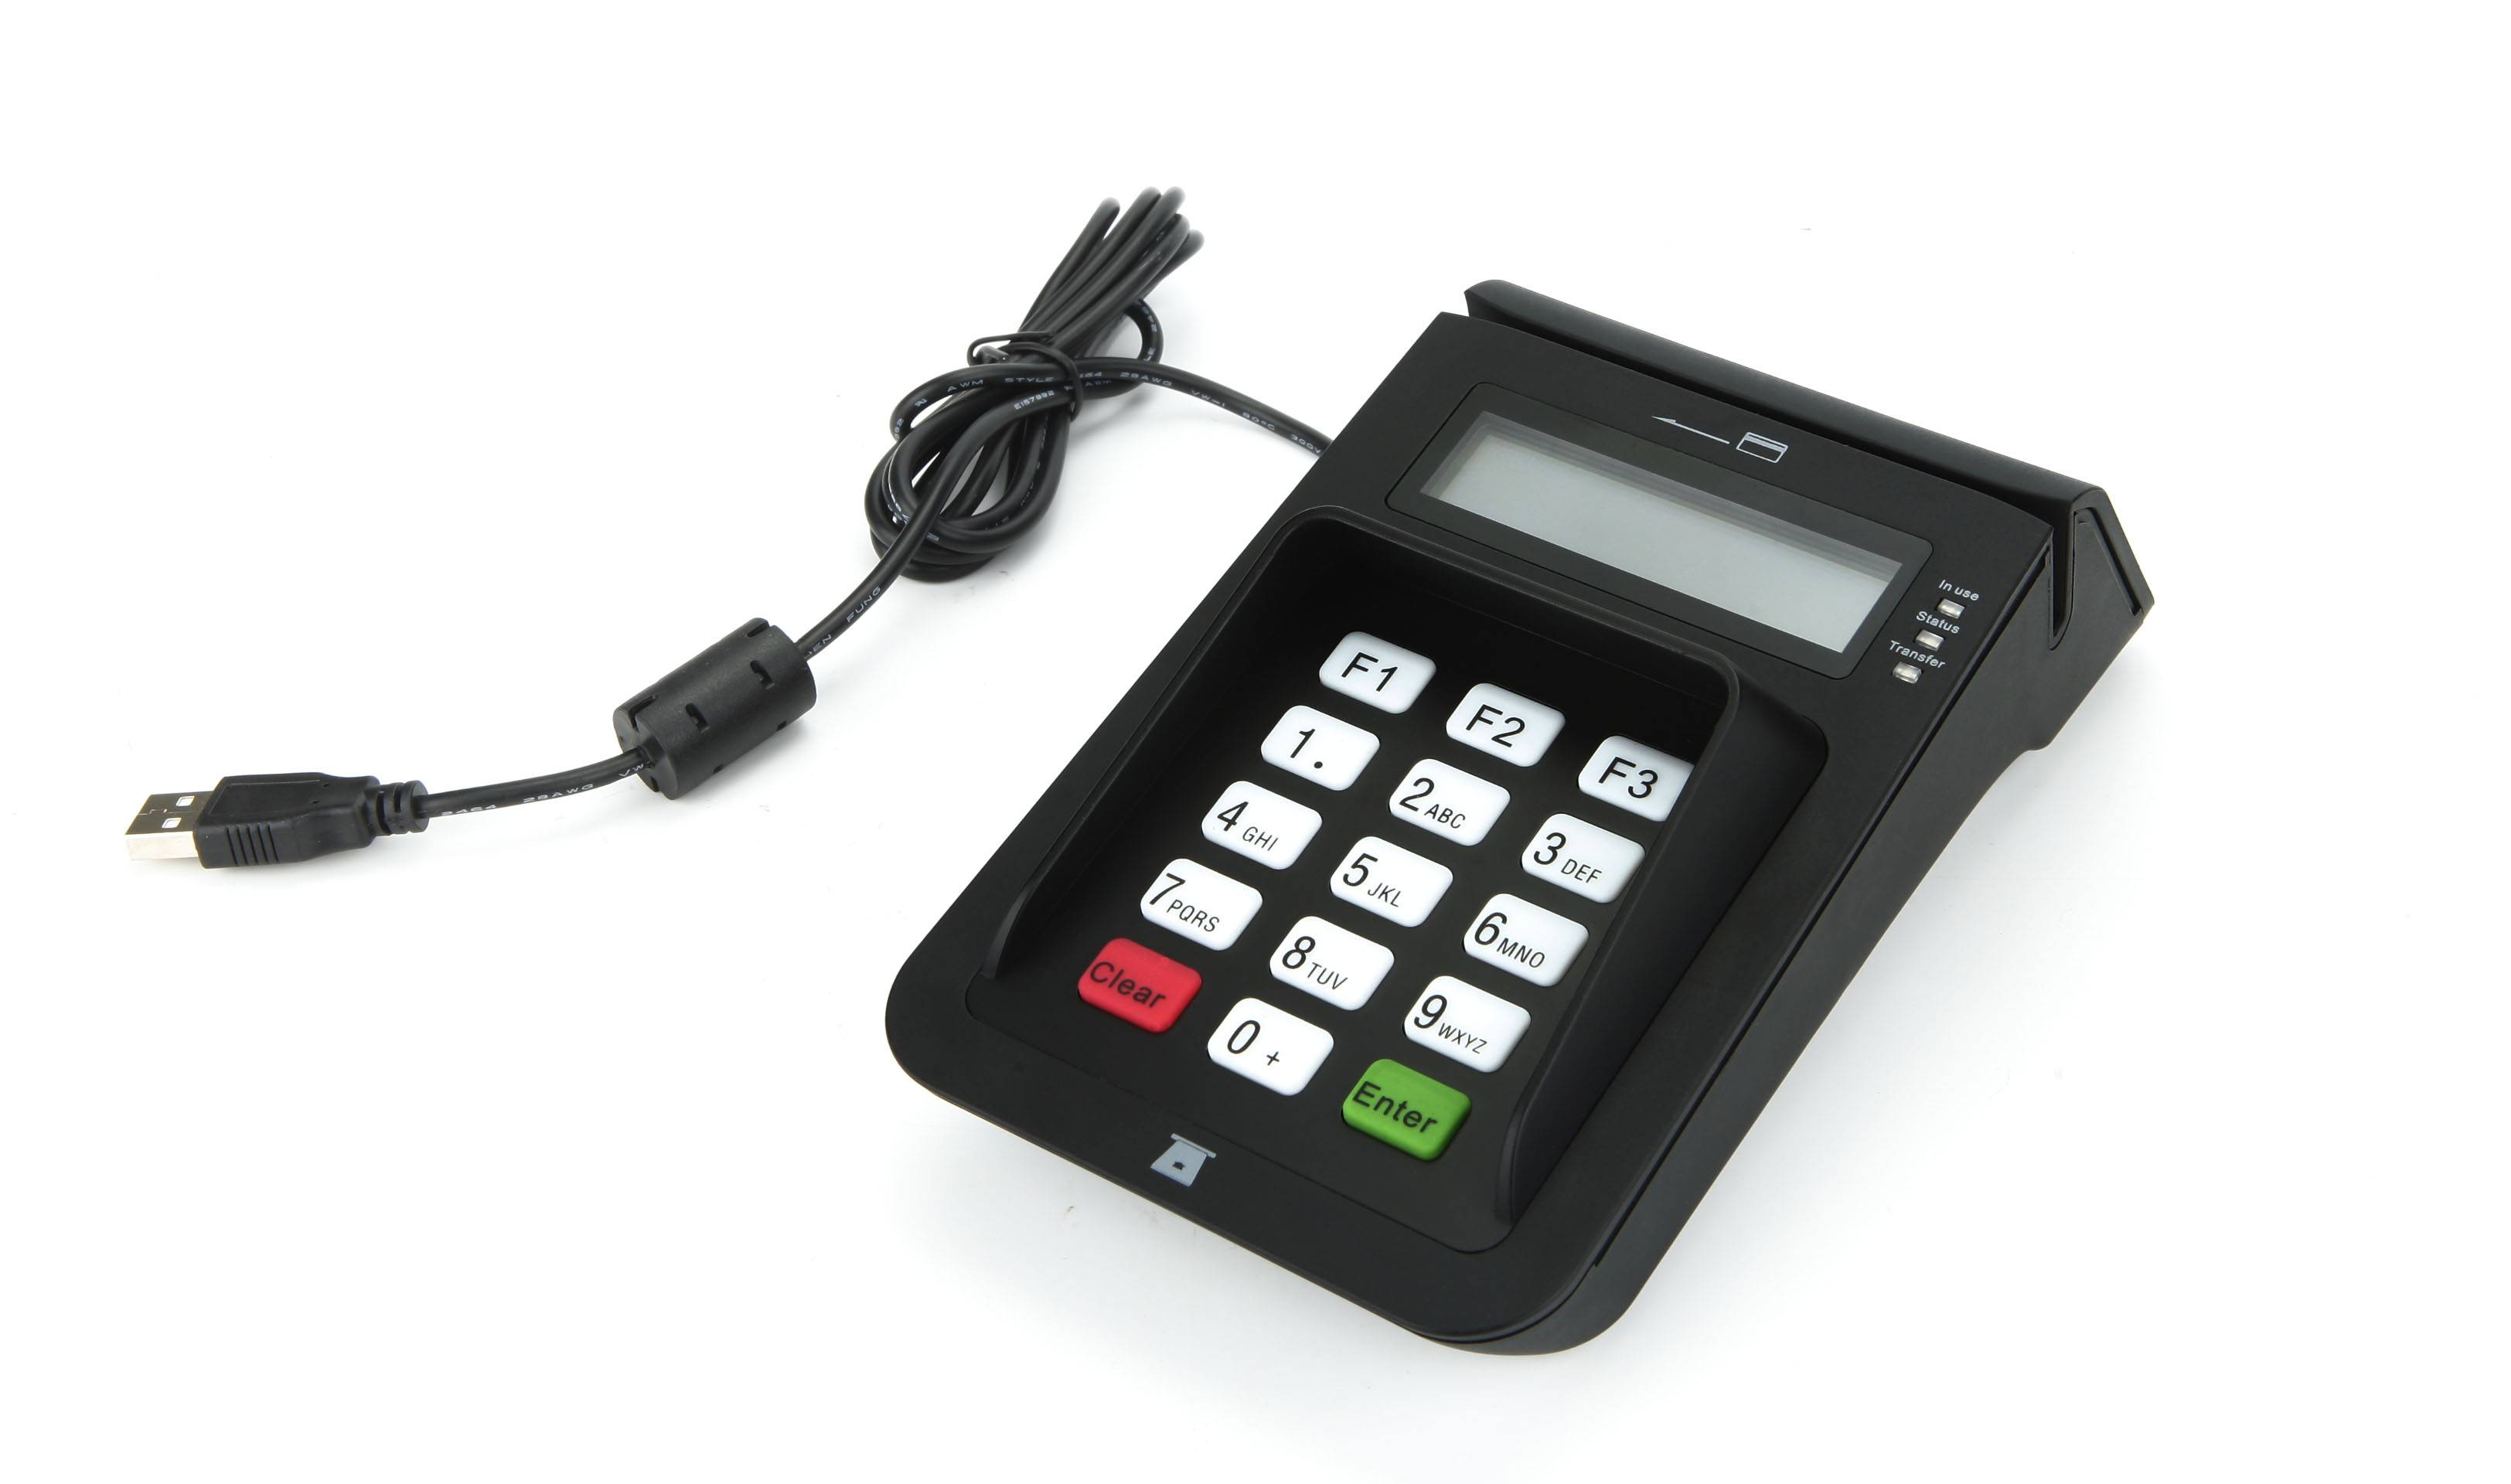 E7 IC card reader writer with PIN PAD